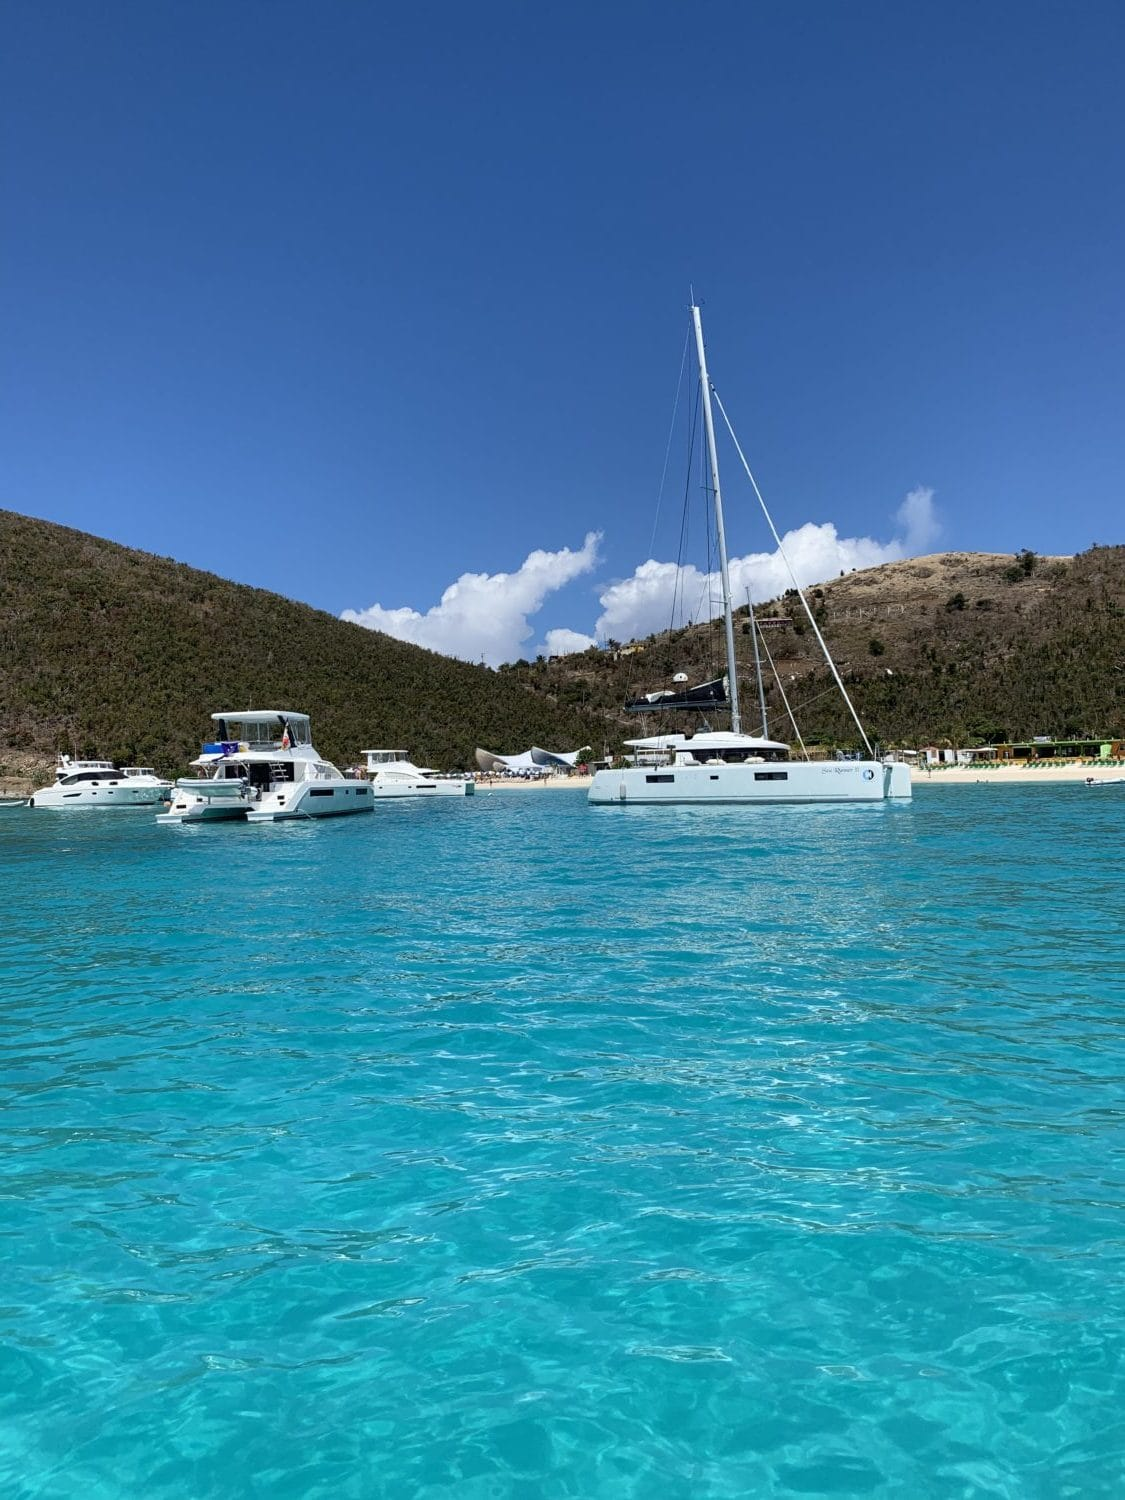 Catamarans anchored in Jost Van Dyke